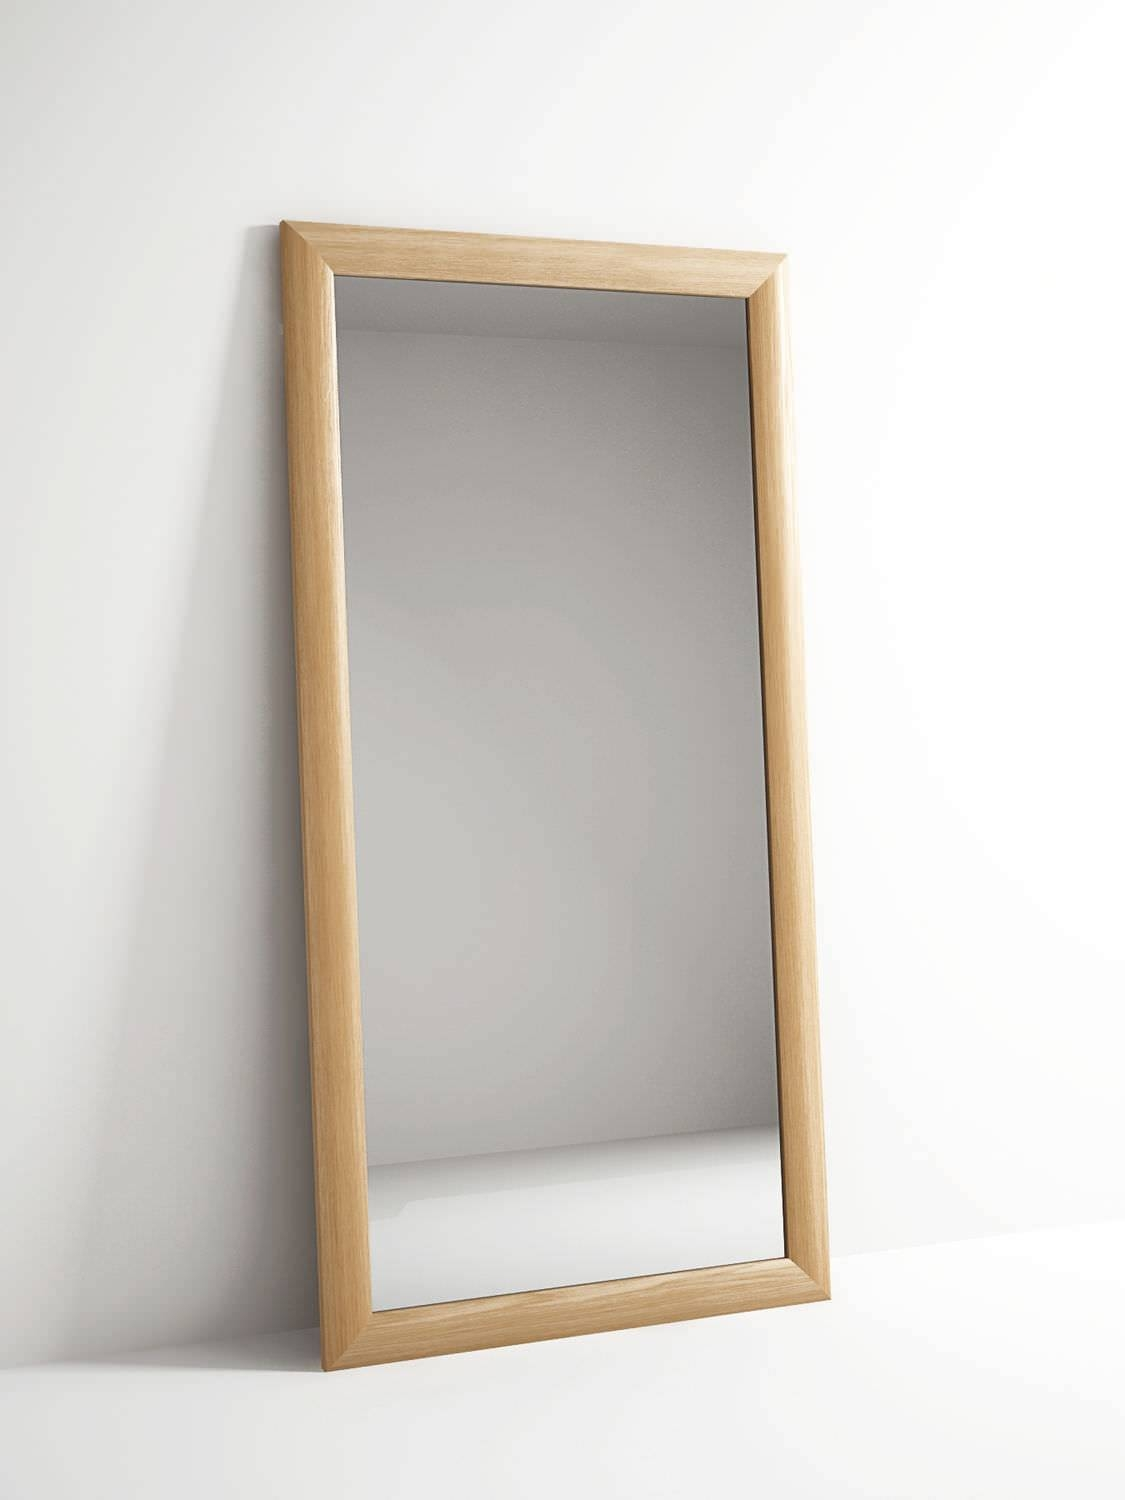 Free Standing Mirror / Contemporary / Rectangular / Oak – Vi40 Intended For Long Free Standing Mirrors (View 11 of 25)